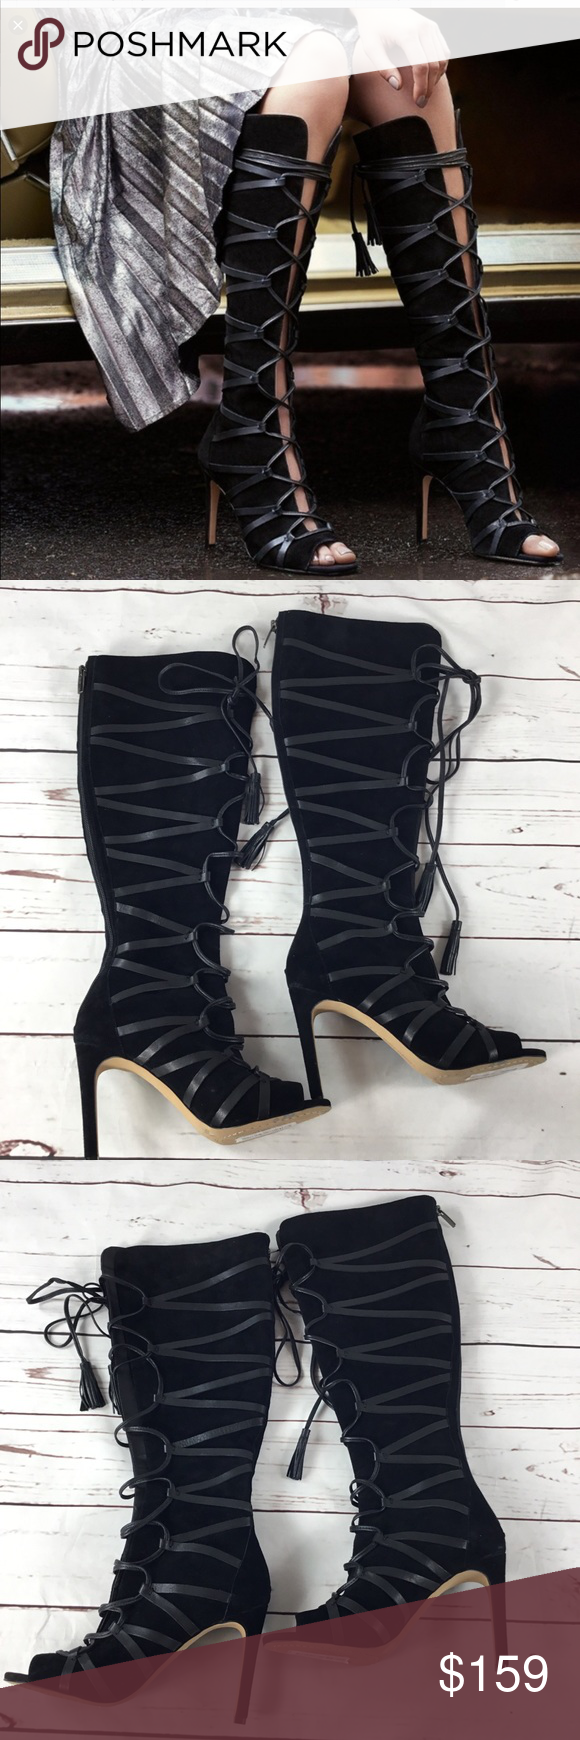 4cec5fa2383b NWT Vince Camuto CARSEY Suede Caged Boot. Size 6.5 NWT